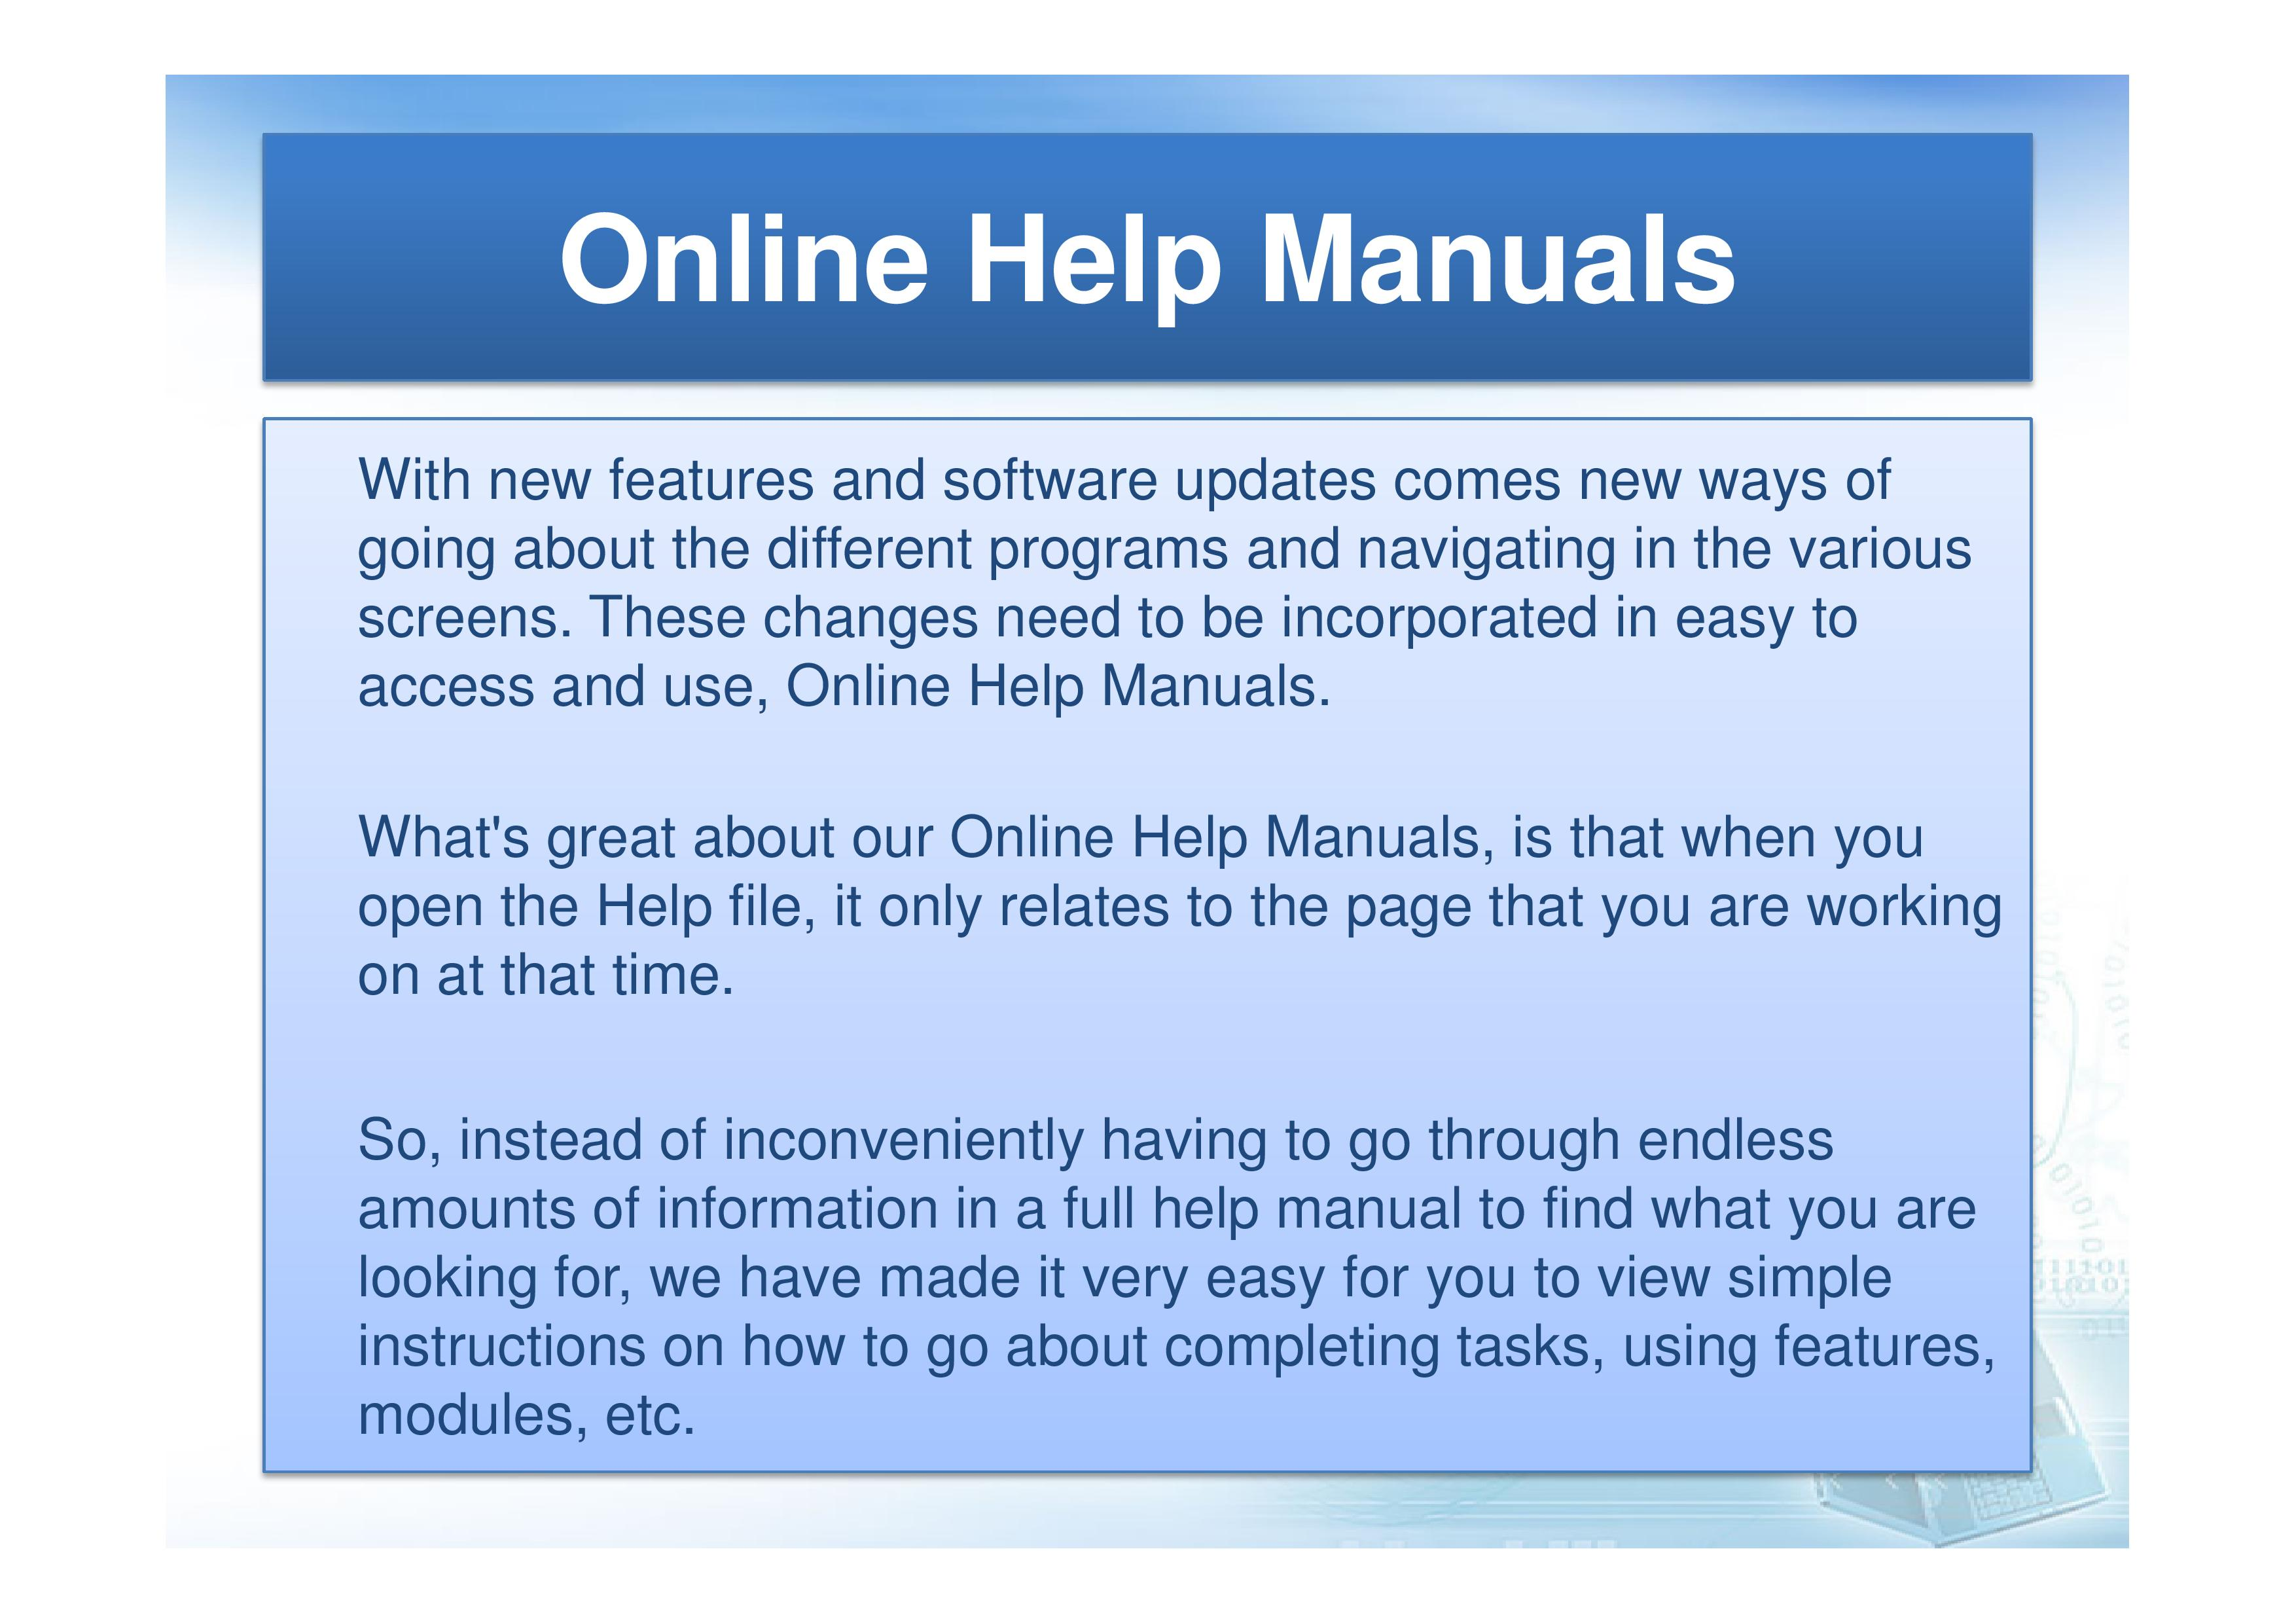 Online Help Manuals are available on all main screens throughout PSO.